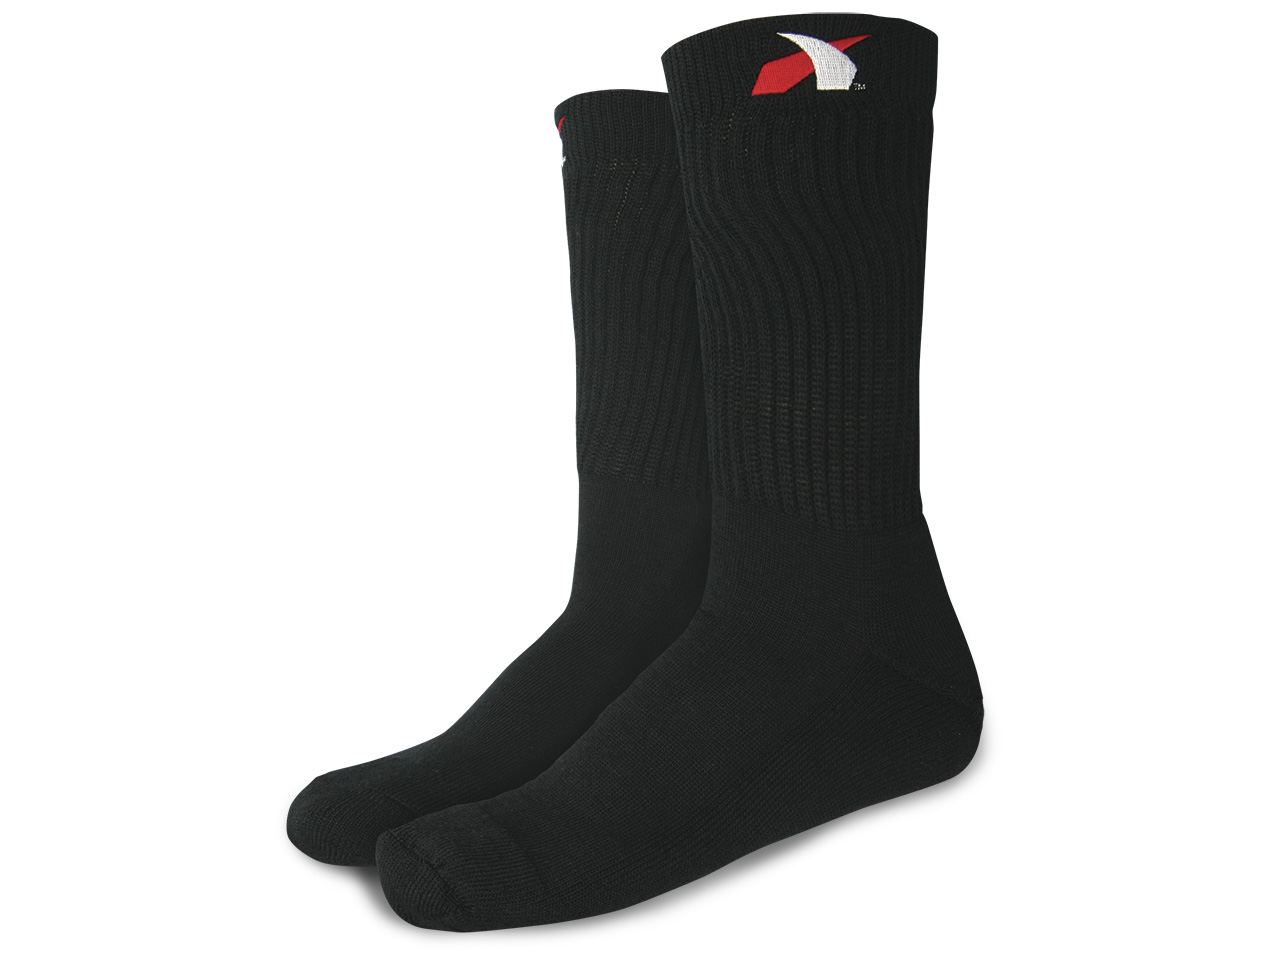 Impact Nomex Socks - Black - Medium